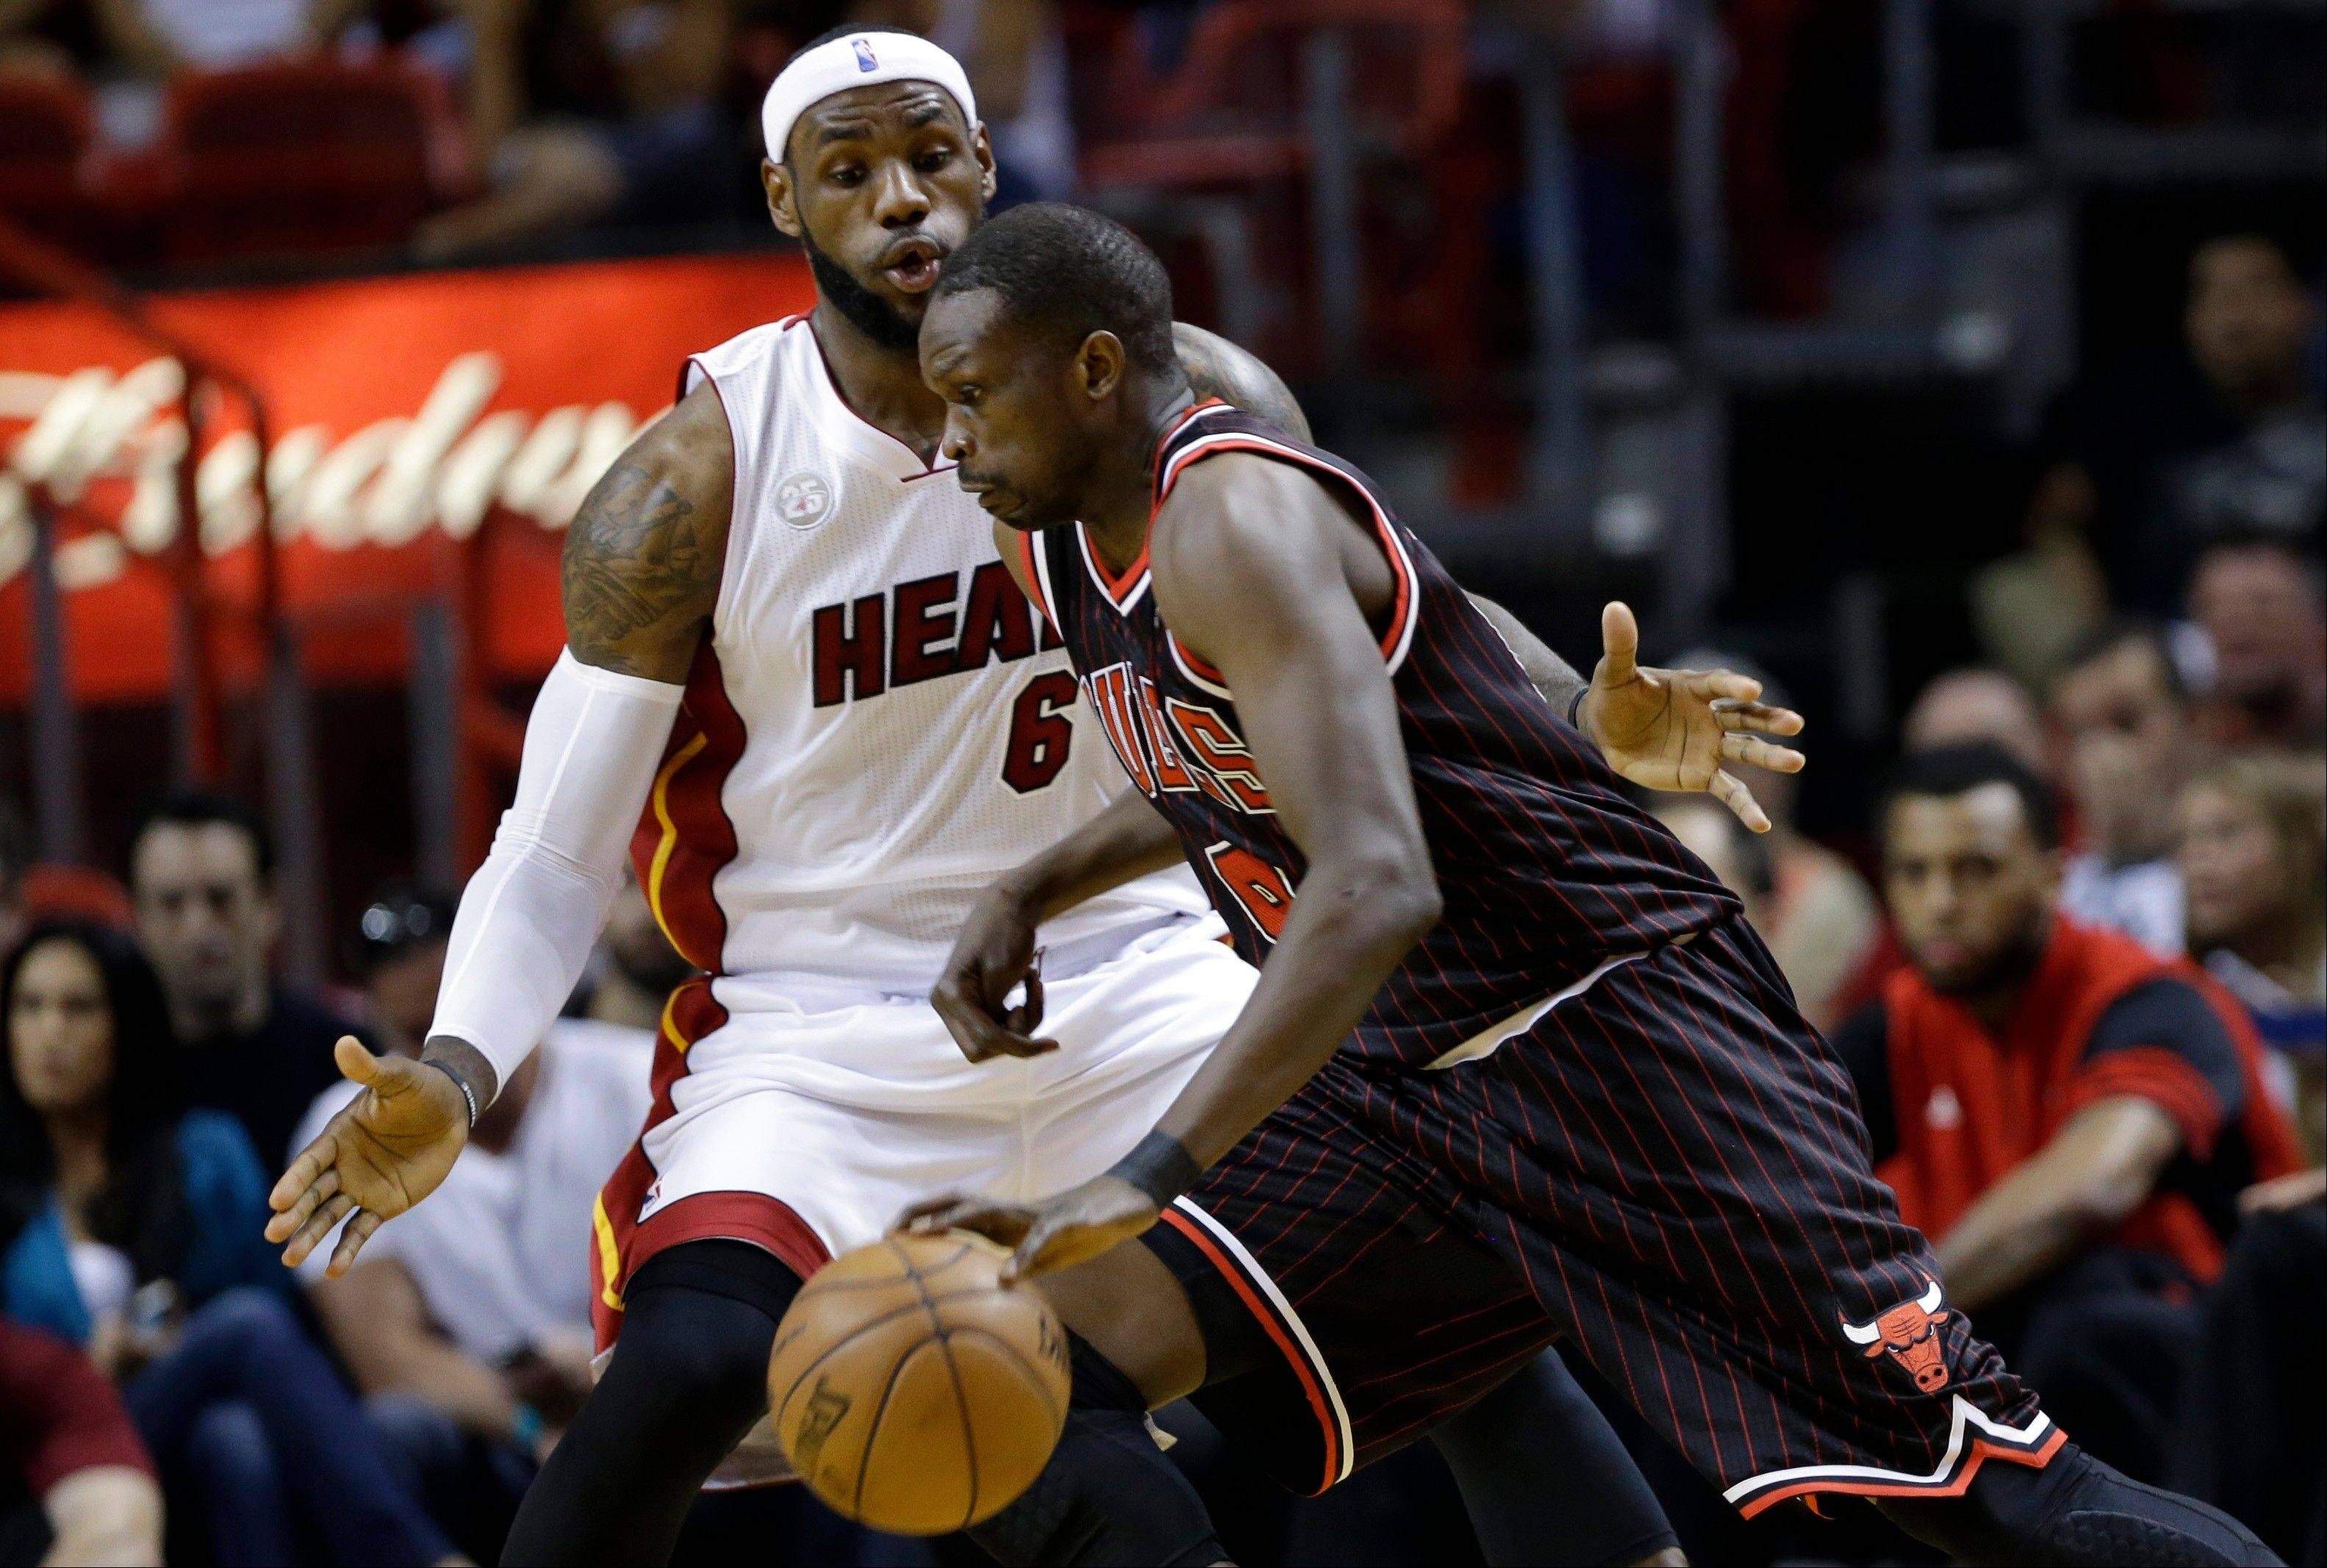 The Bulls' Luol Deng drives to the basket against the Heat's LeBron James on Sunday.